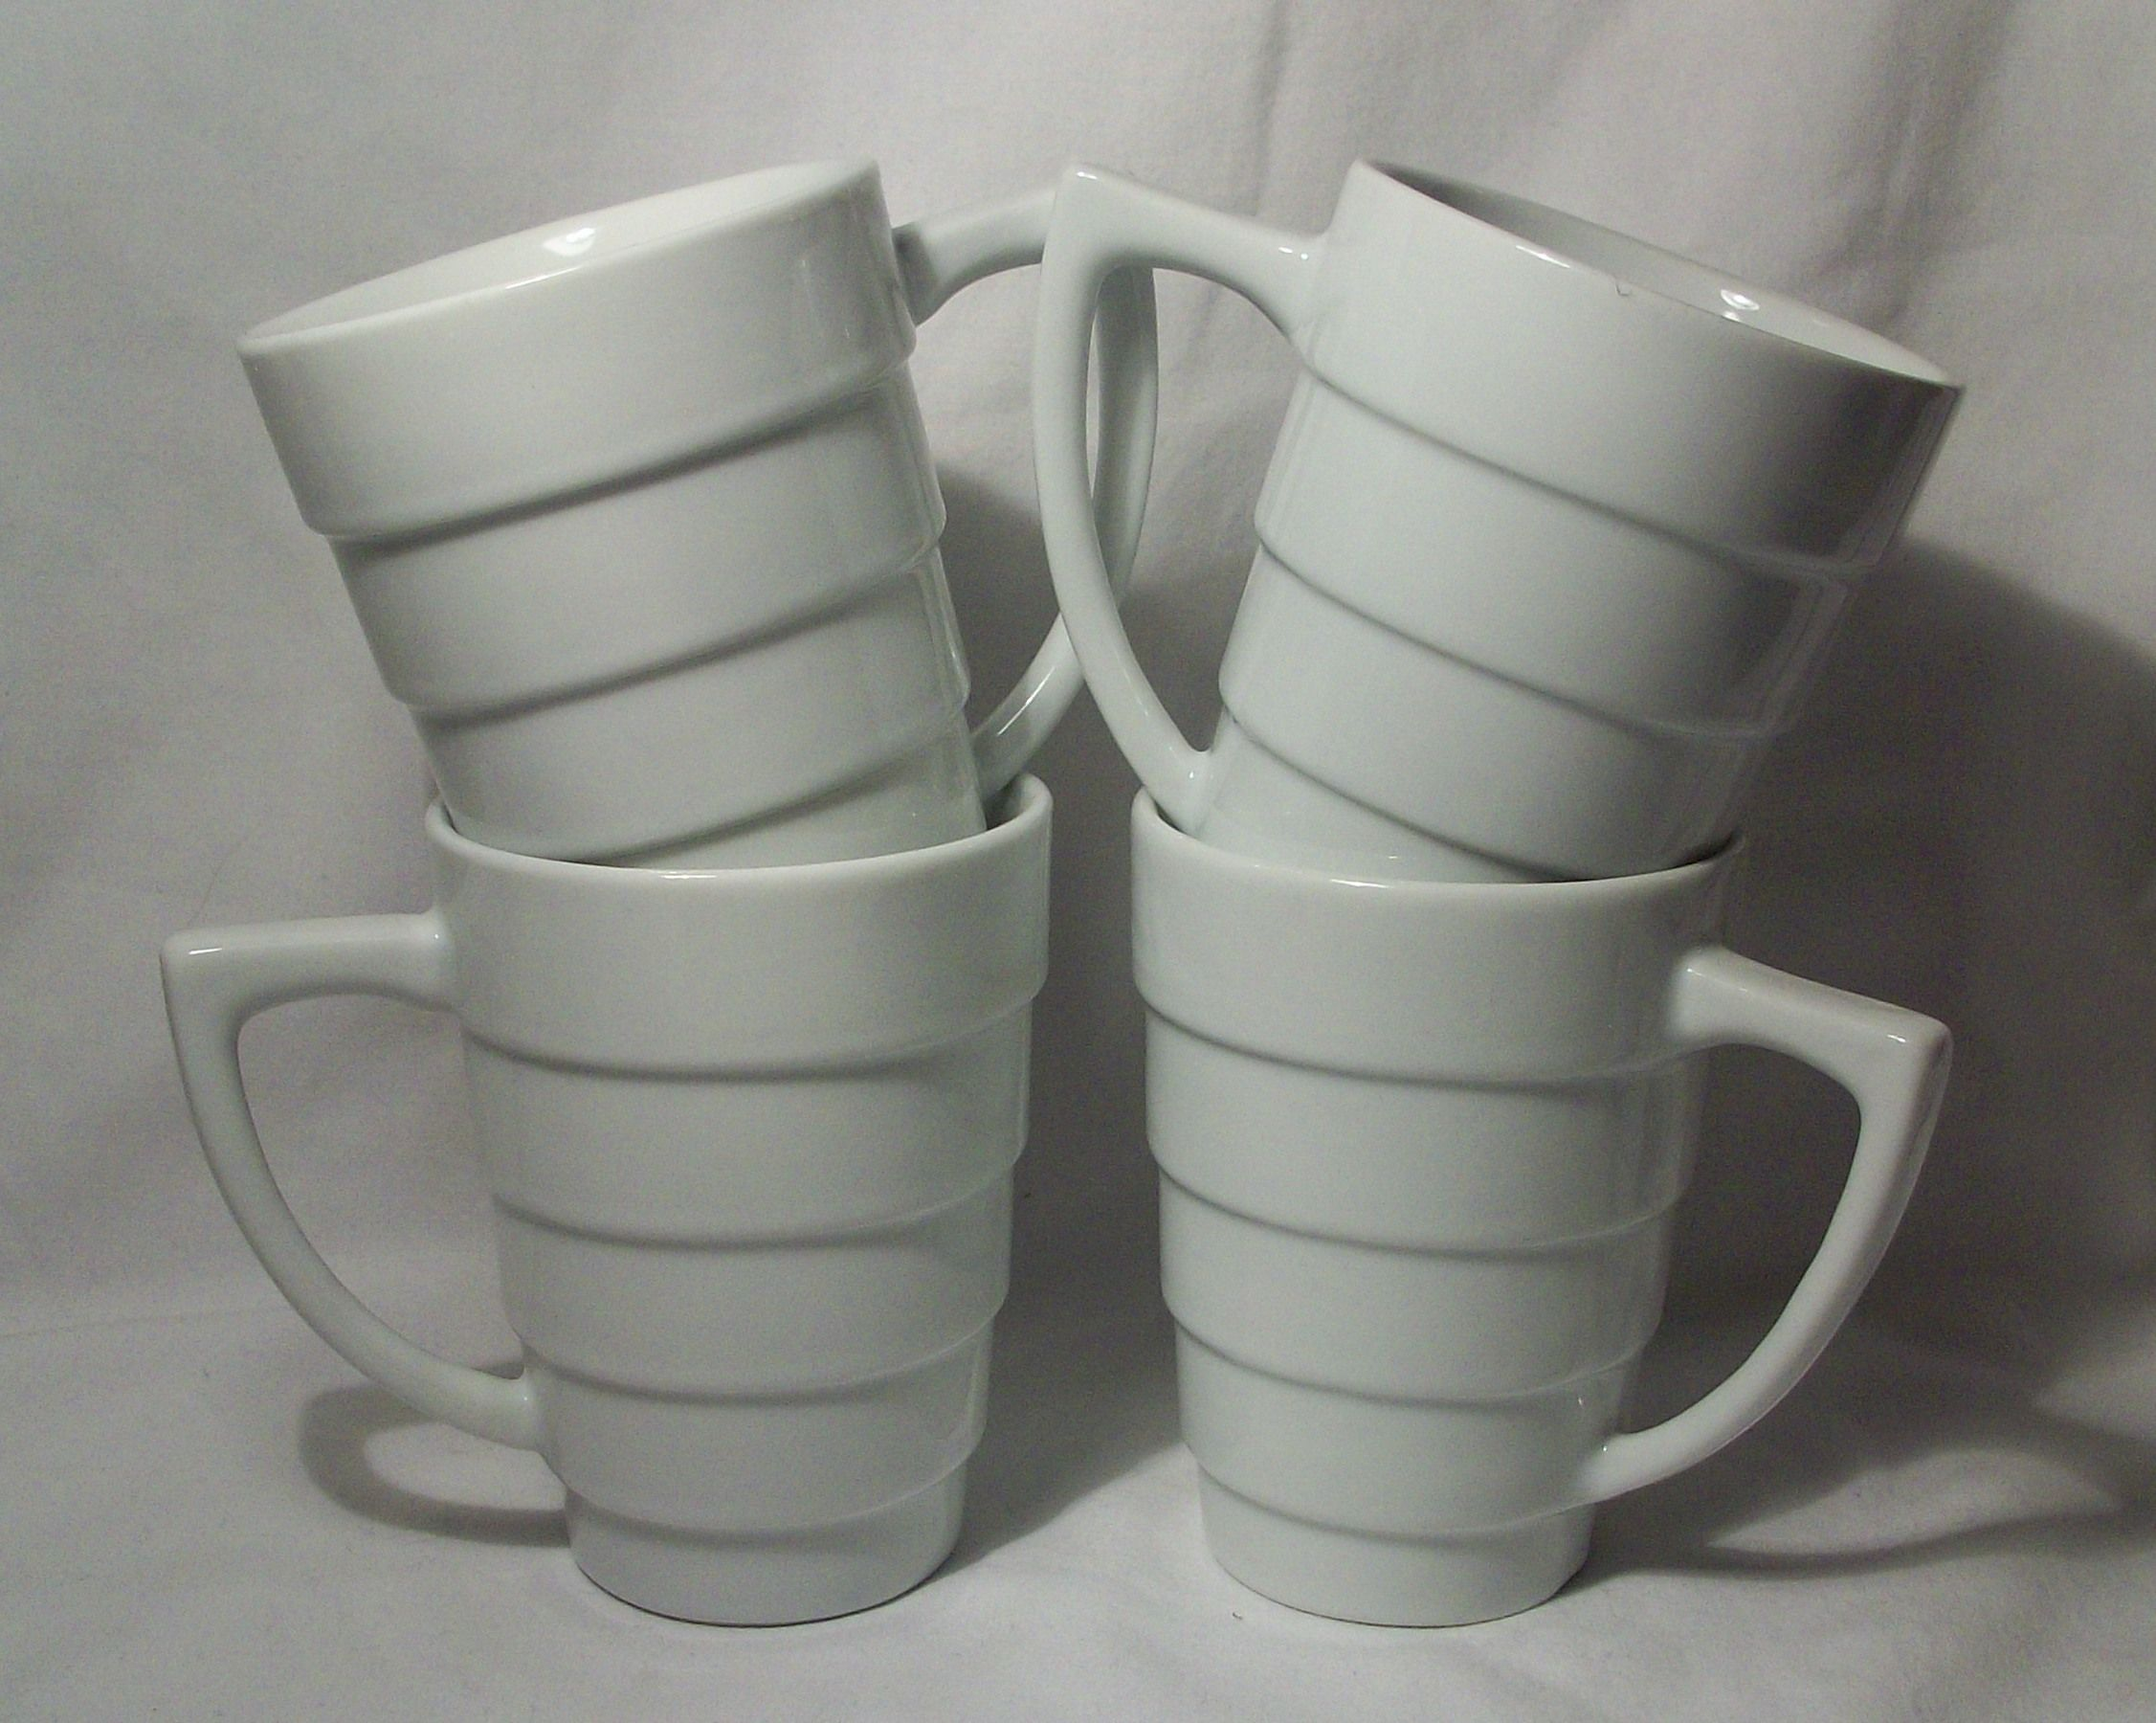 Frank Lloyd Wright- Krups Guggenheim Coffee Mugs & Frank Lloyd Wright- Krups Guggenheim Coffee Mugs | Vintage ...